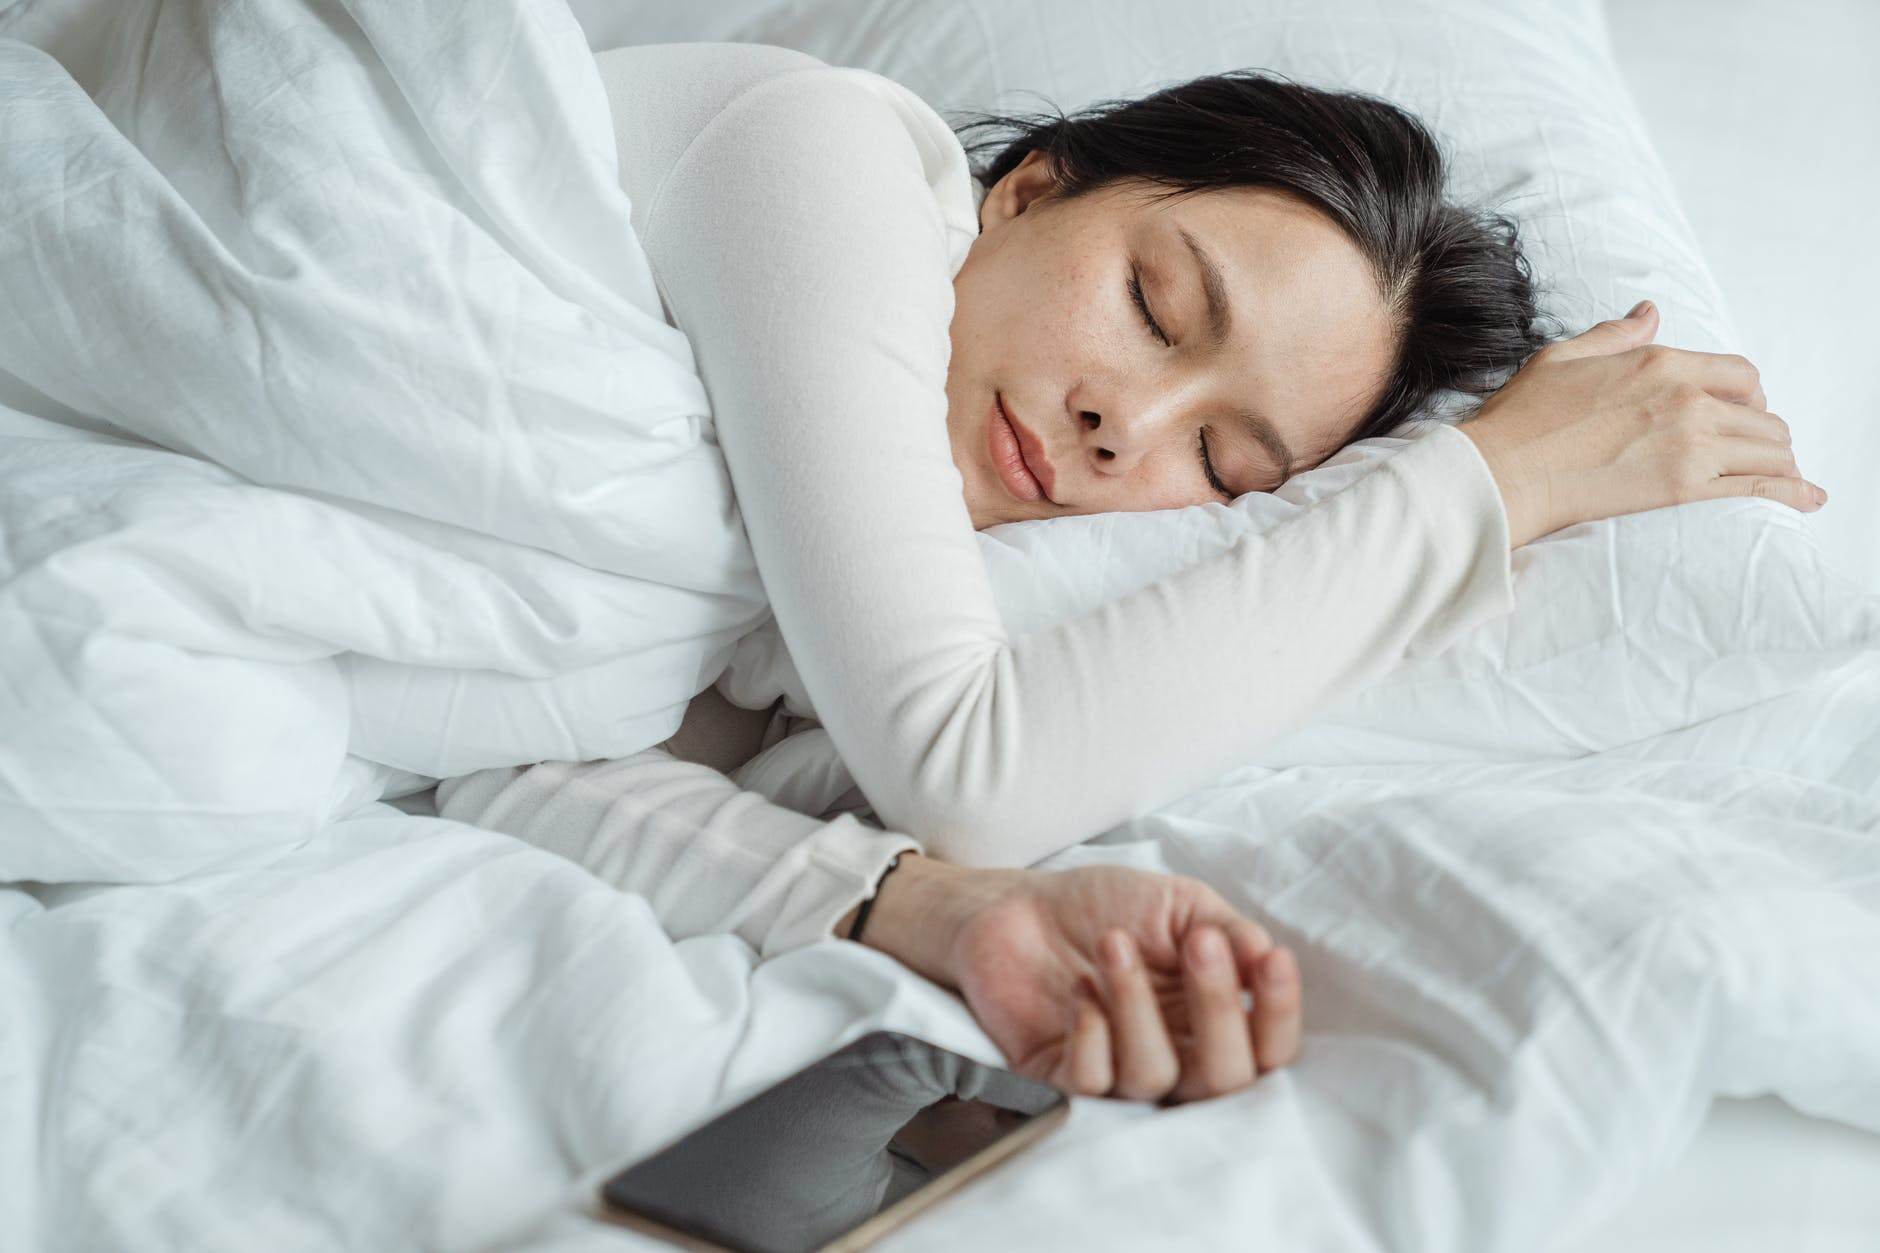 6 Simple Tips to Improve Your Sleep Quality